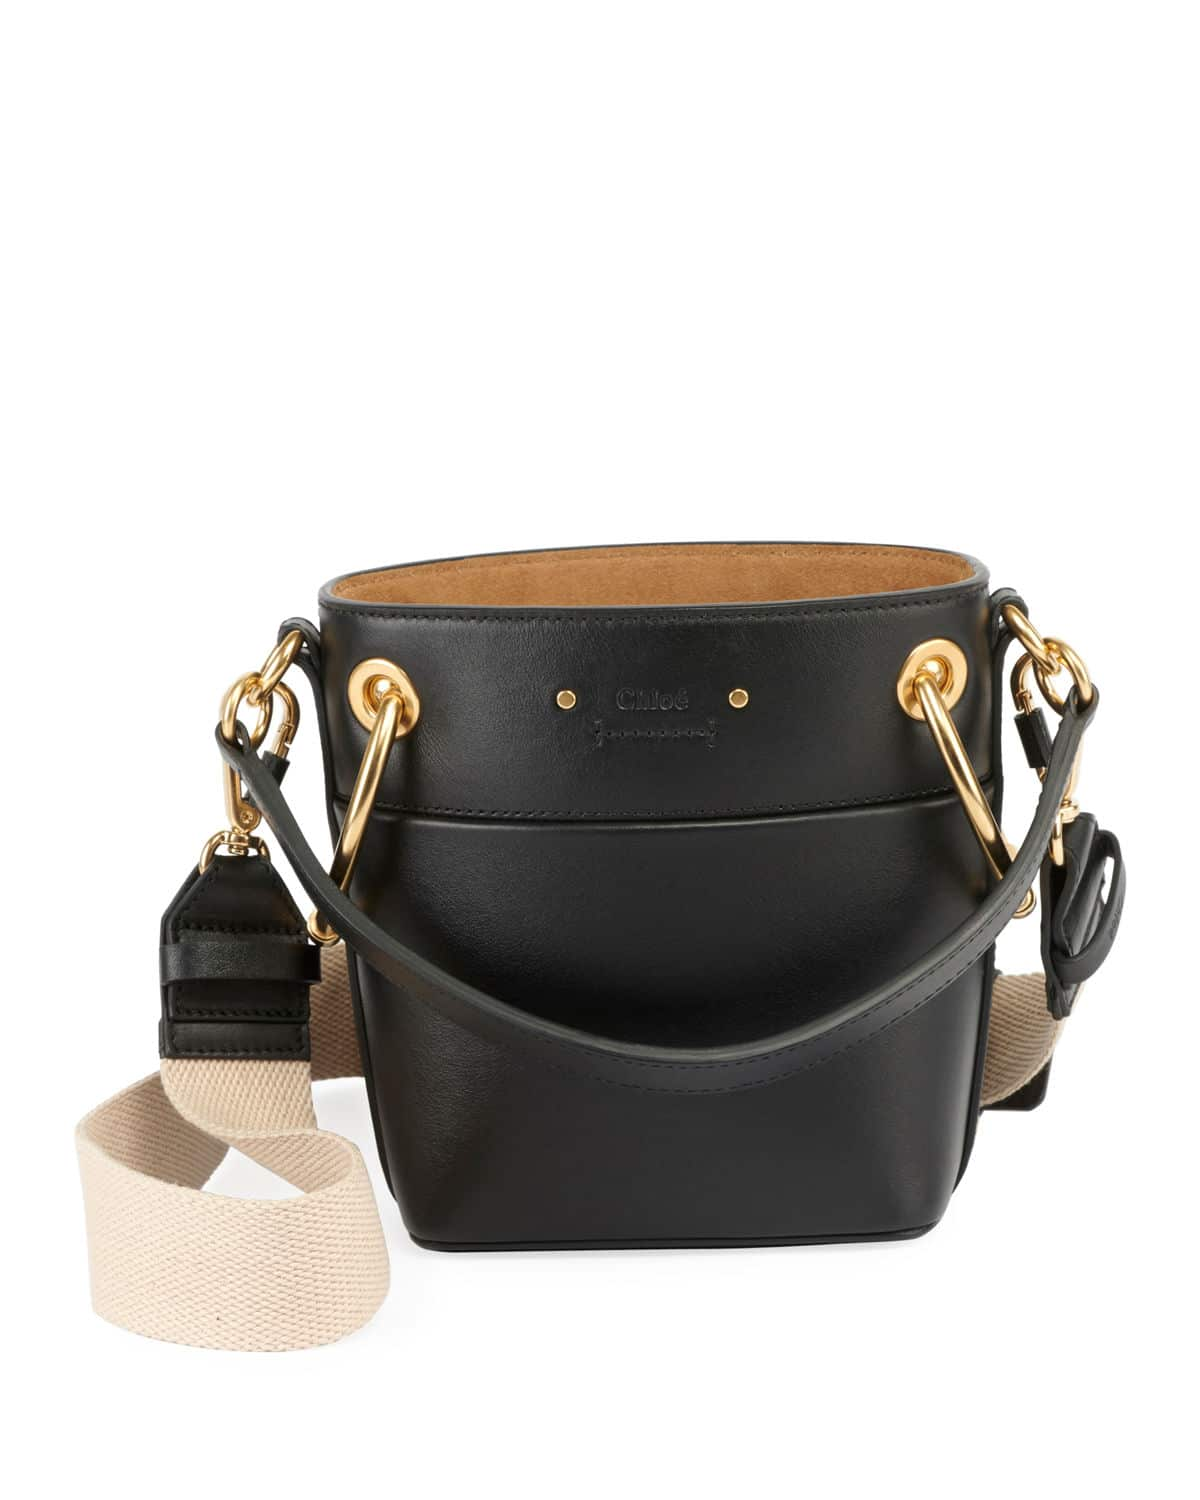 5368bfd490 Chloe Pre-Fall 2018 Bag Collection With The New Roy Bucket Bag ...